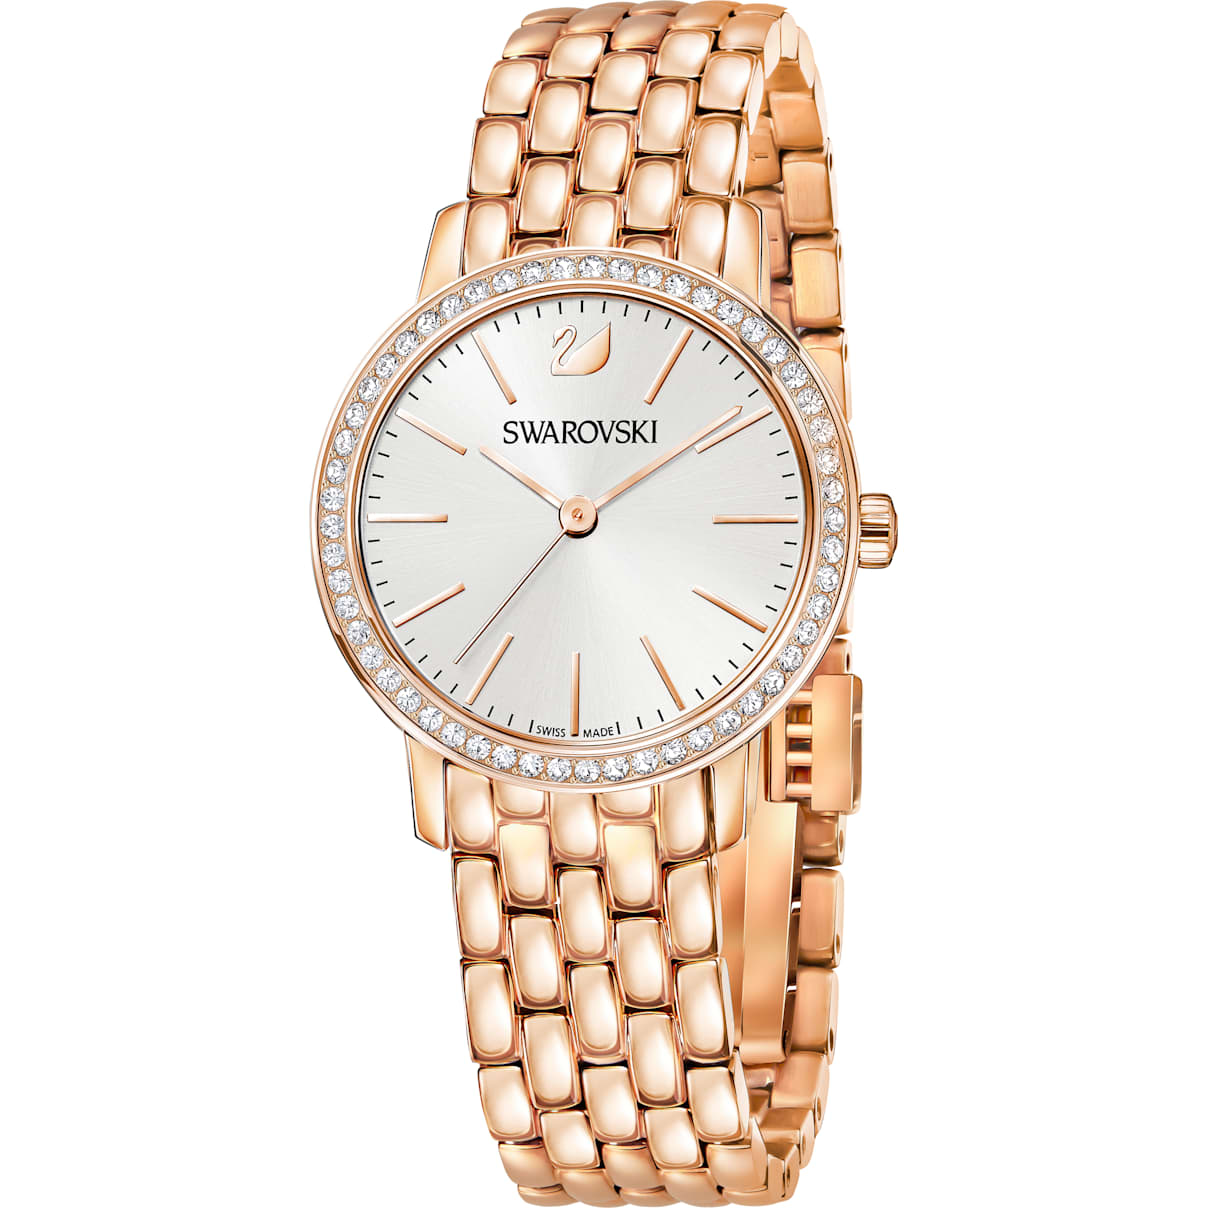 Swarovski Graceful Watch, Metal bracelet, Rose-gold tone PVD